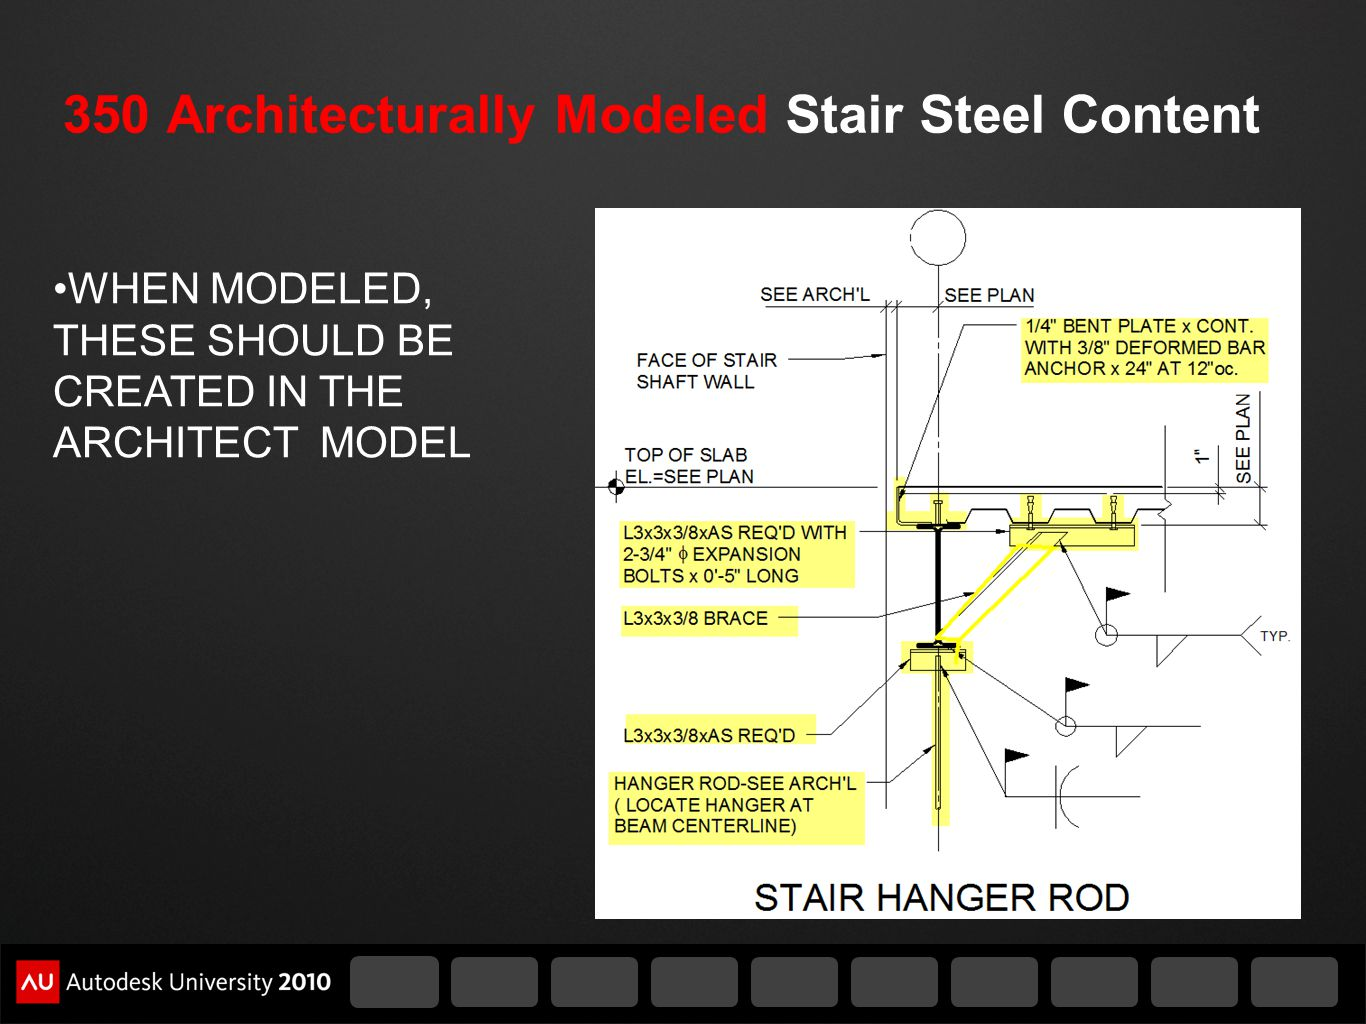 350 Architecturally Modeled Stair Steel Content WHEN MODELED, THESE SHOULD BE CREATED IN THE ARCHITECT MODEL